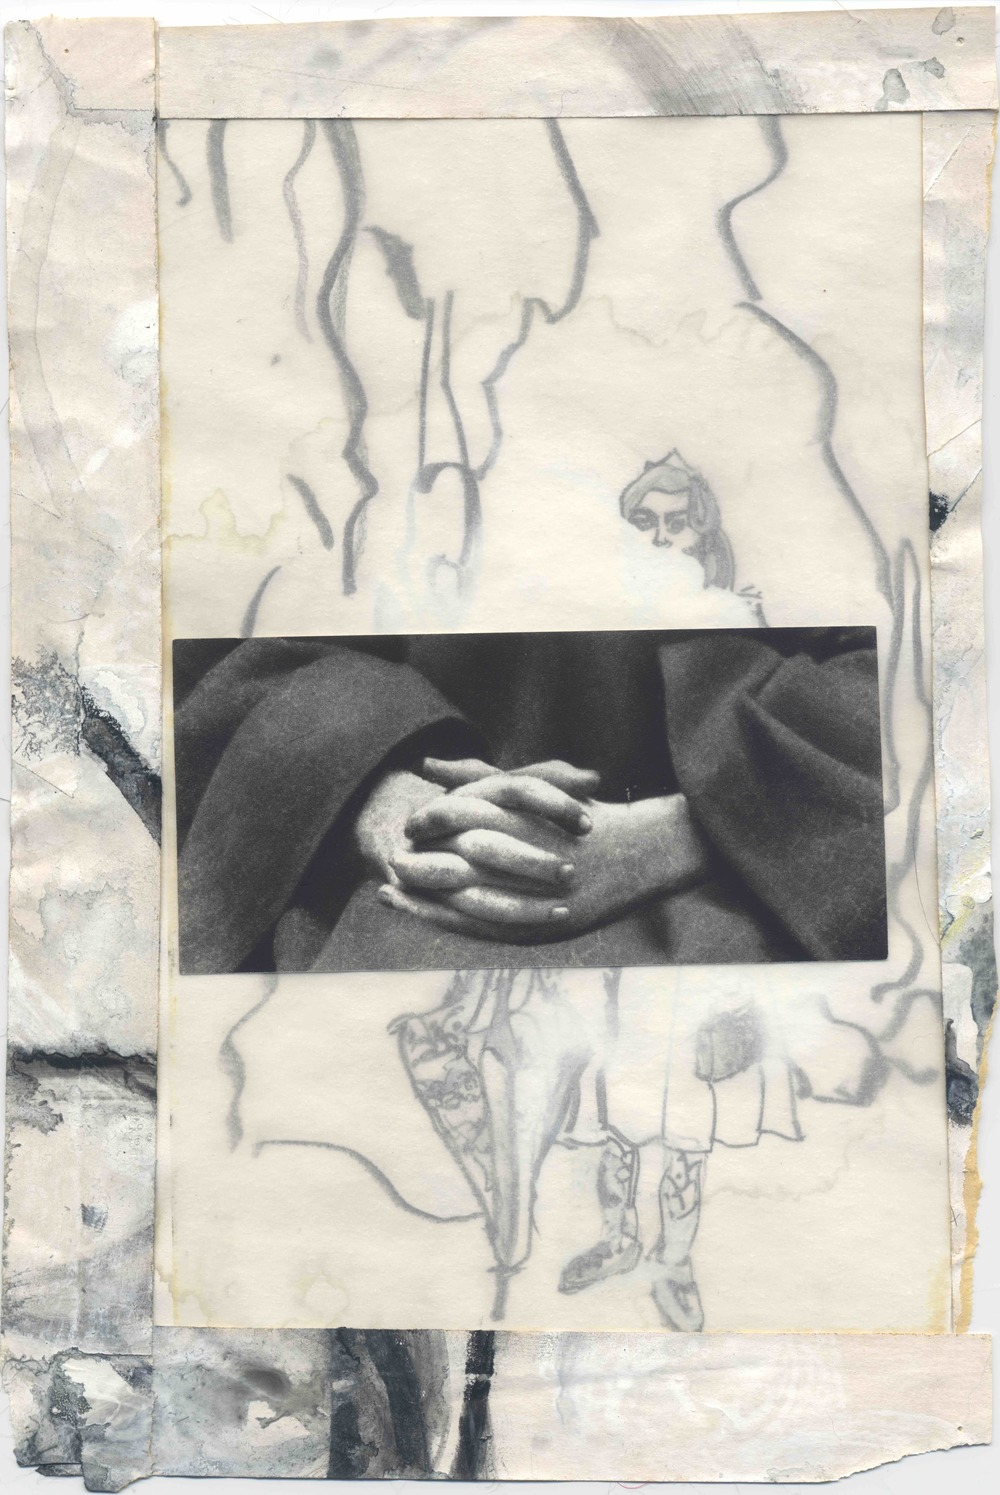 "Untitled (Digna), 2005-2008 Graphite, w/c, acrylic, vellum, archival tape, paper, 9.75 x 6.5"" Copyright © Tennyson Woodbridge, 1963 to present;  Collection Eli Davey"